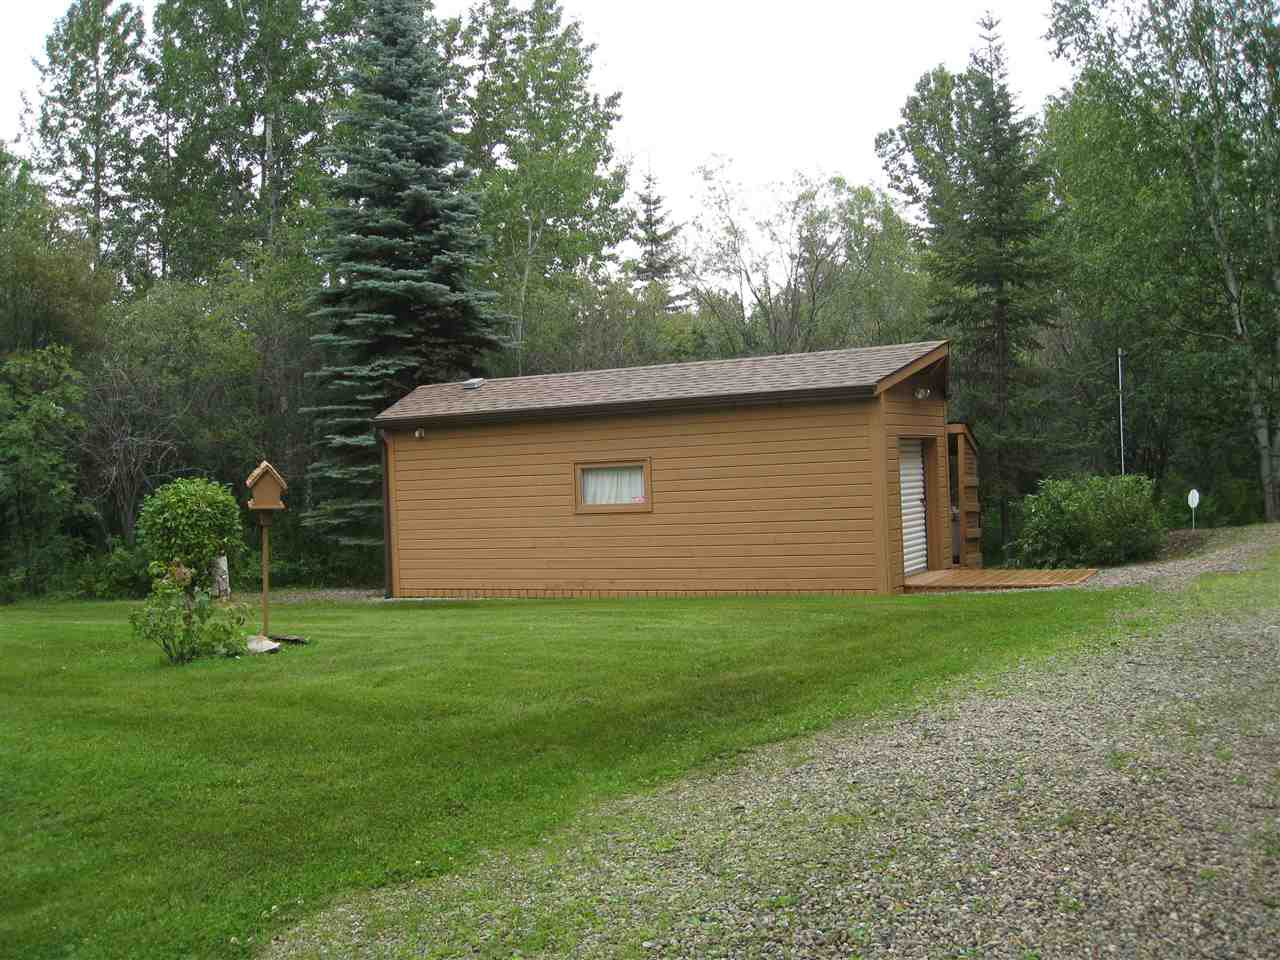 Photo 21: Photos: 5, 1319 Twp Rd 550: Rural Lac Ste. Anne County House for sale : MLS®# E4167720